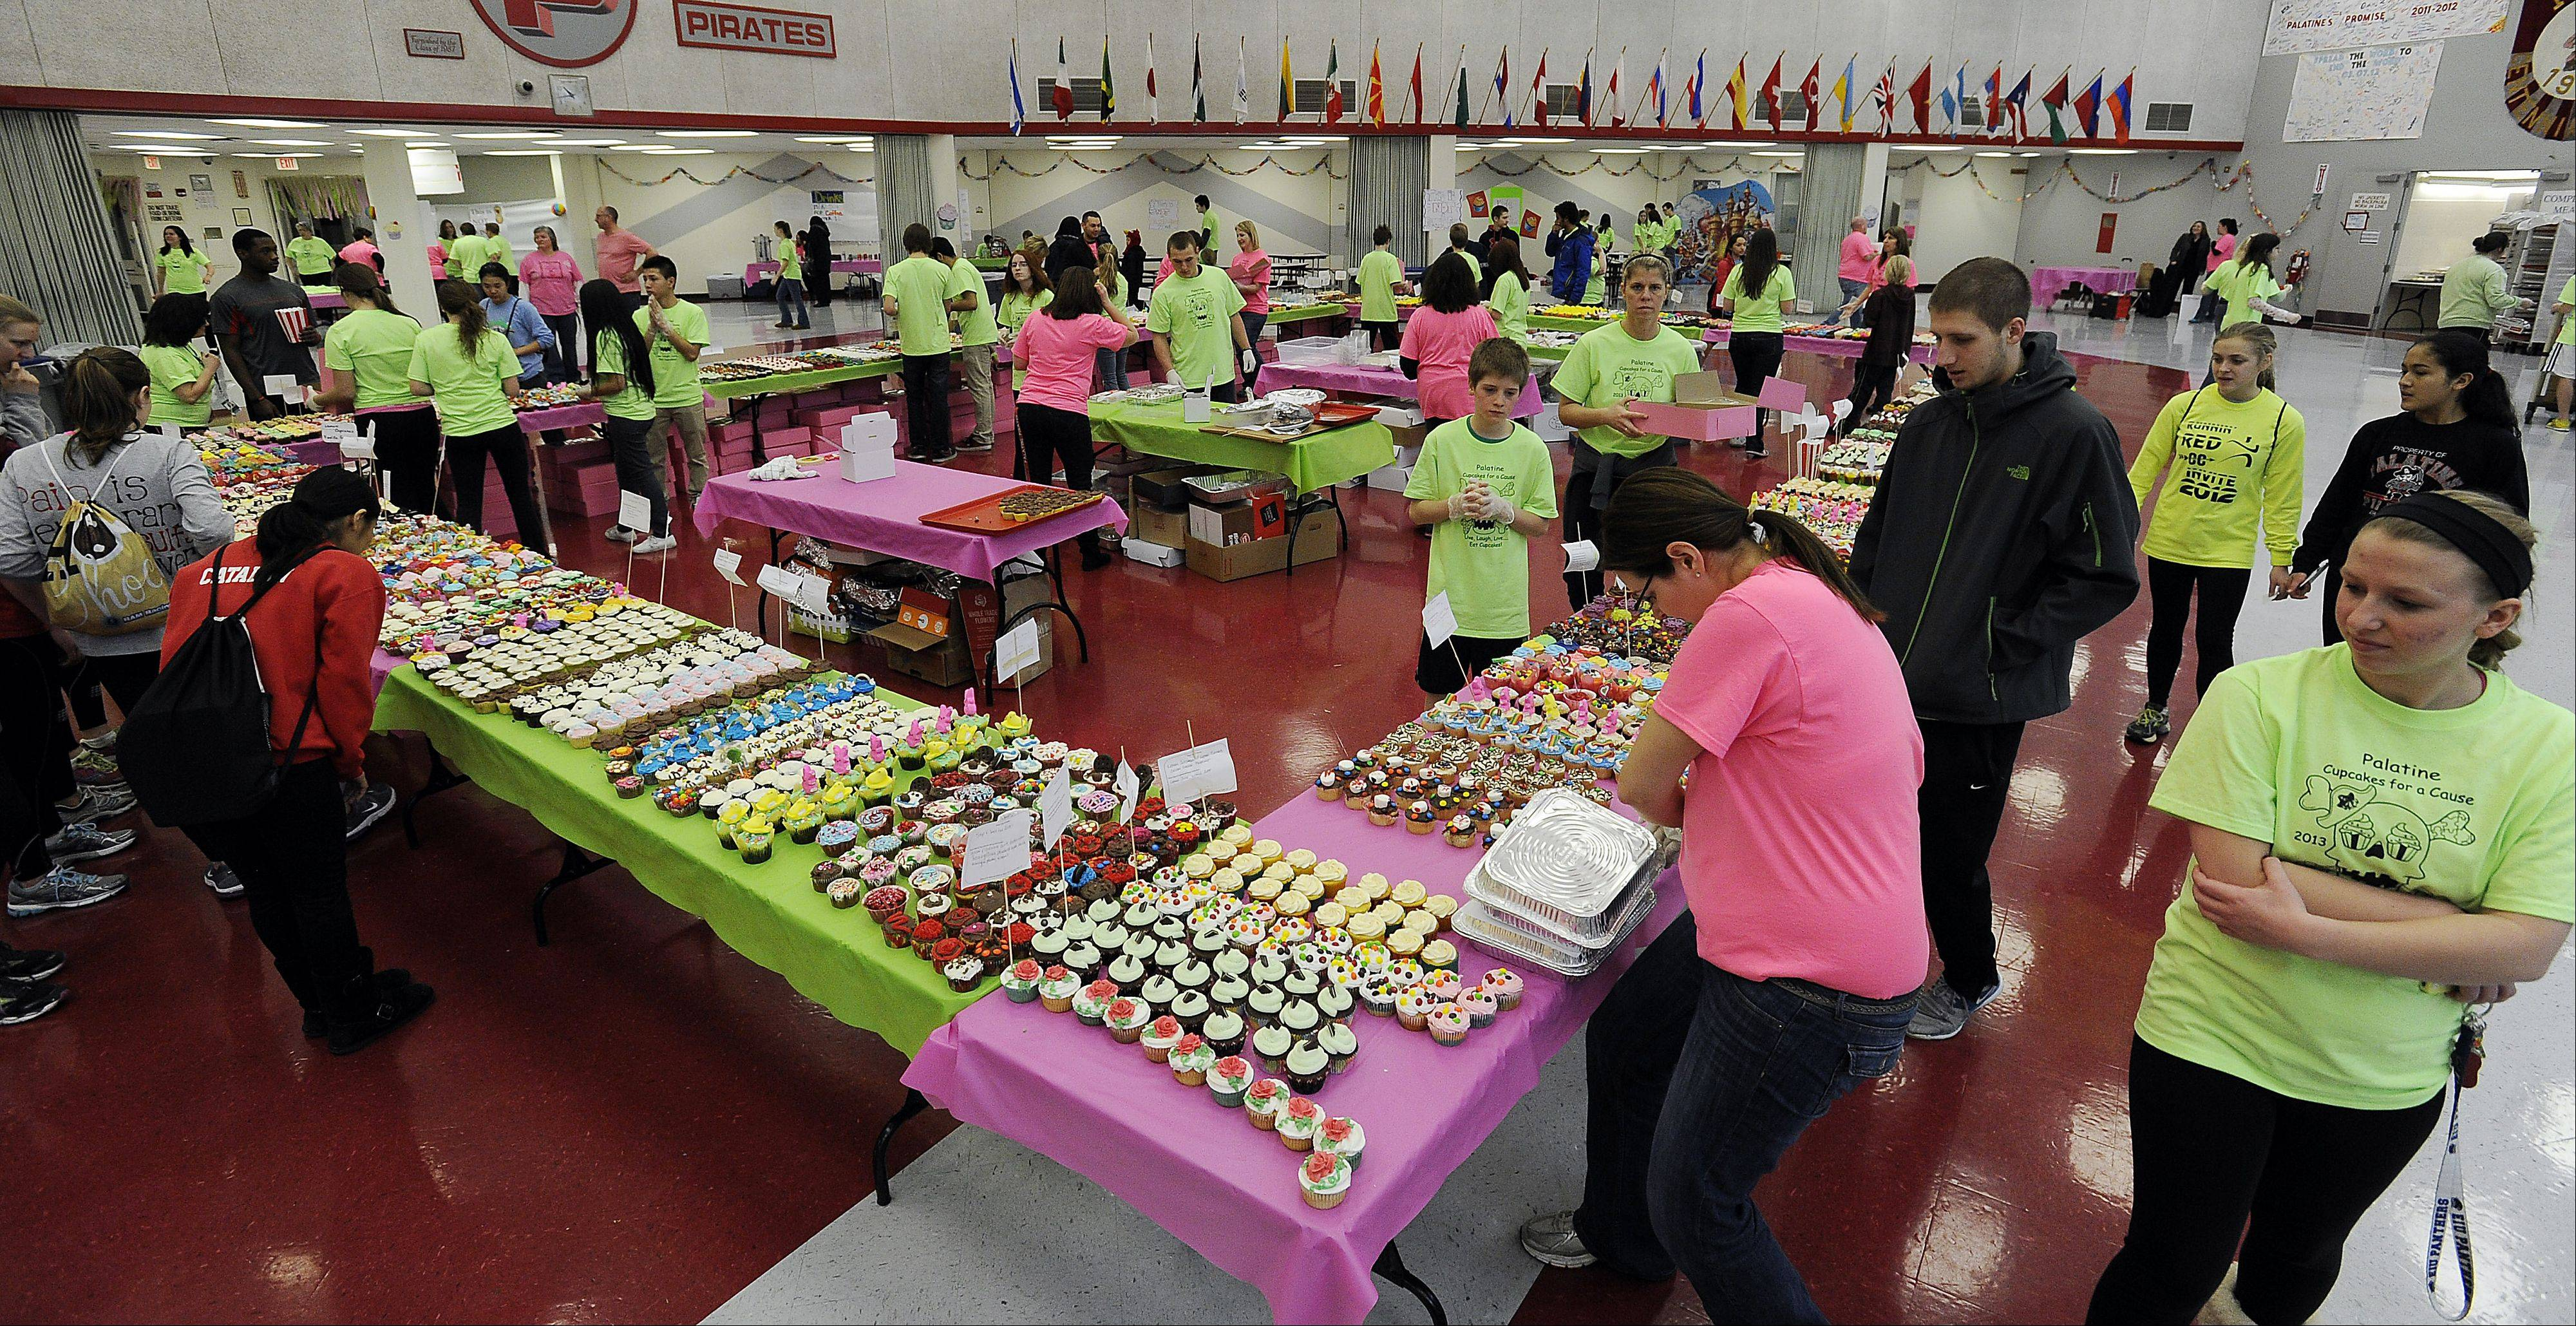 New federal rules would do away with bake sales held during school hours. But bake sales would be allowed at events at other times, like at a school carnival held over the weekend.